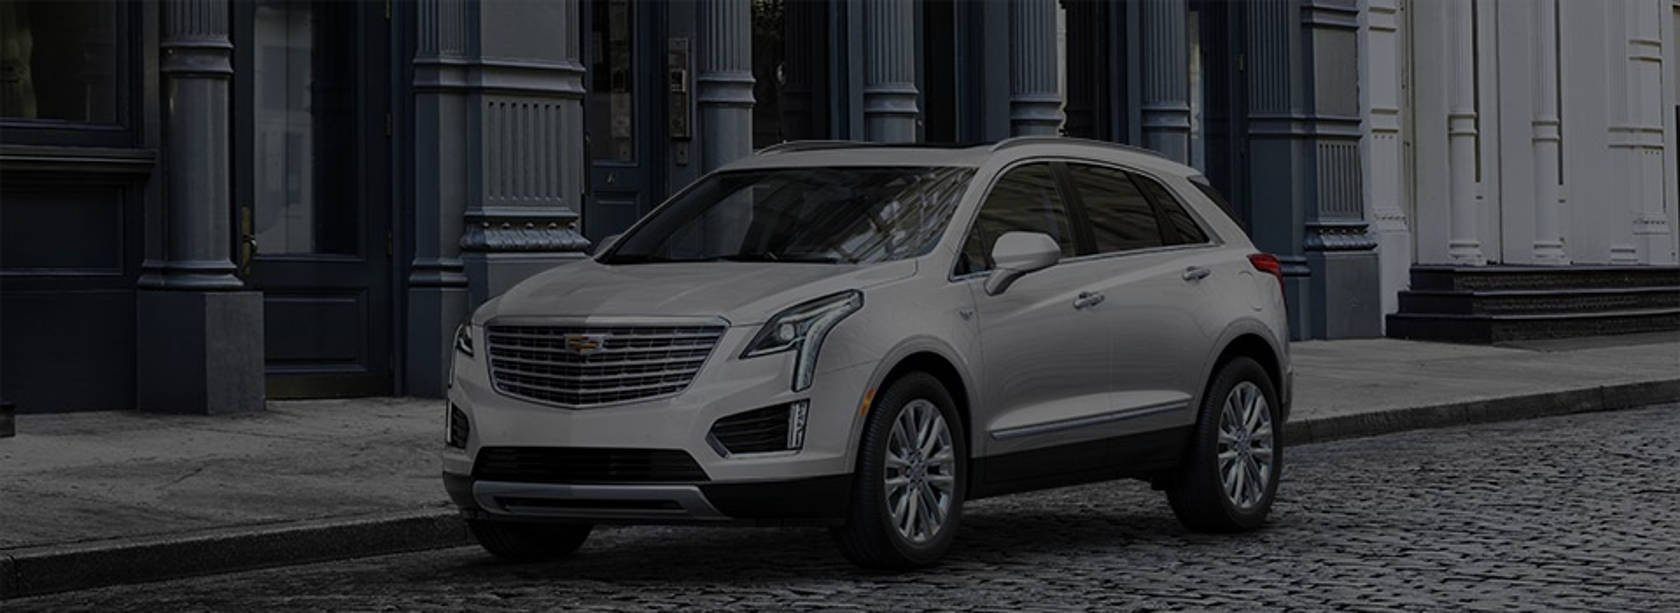 cadillac-extended-warranty-banner